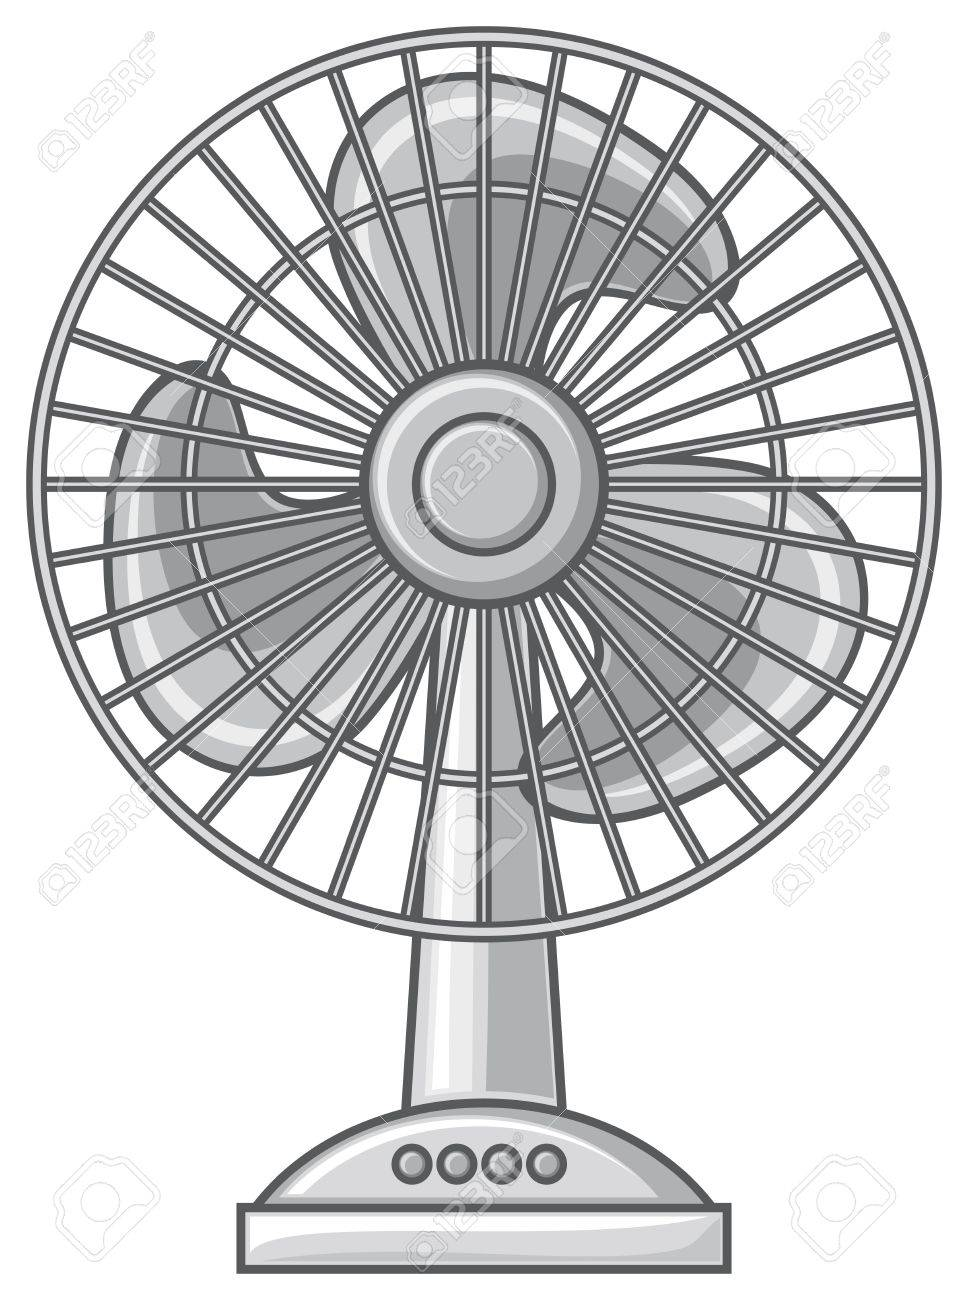 Table Fan (fan For The Home And Office, Electric Fan) Royalty Free ...